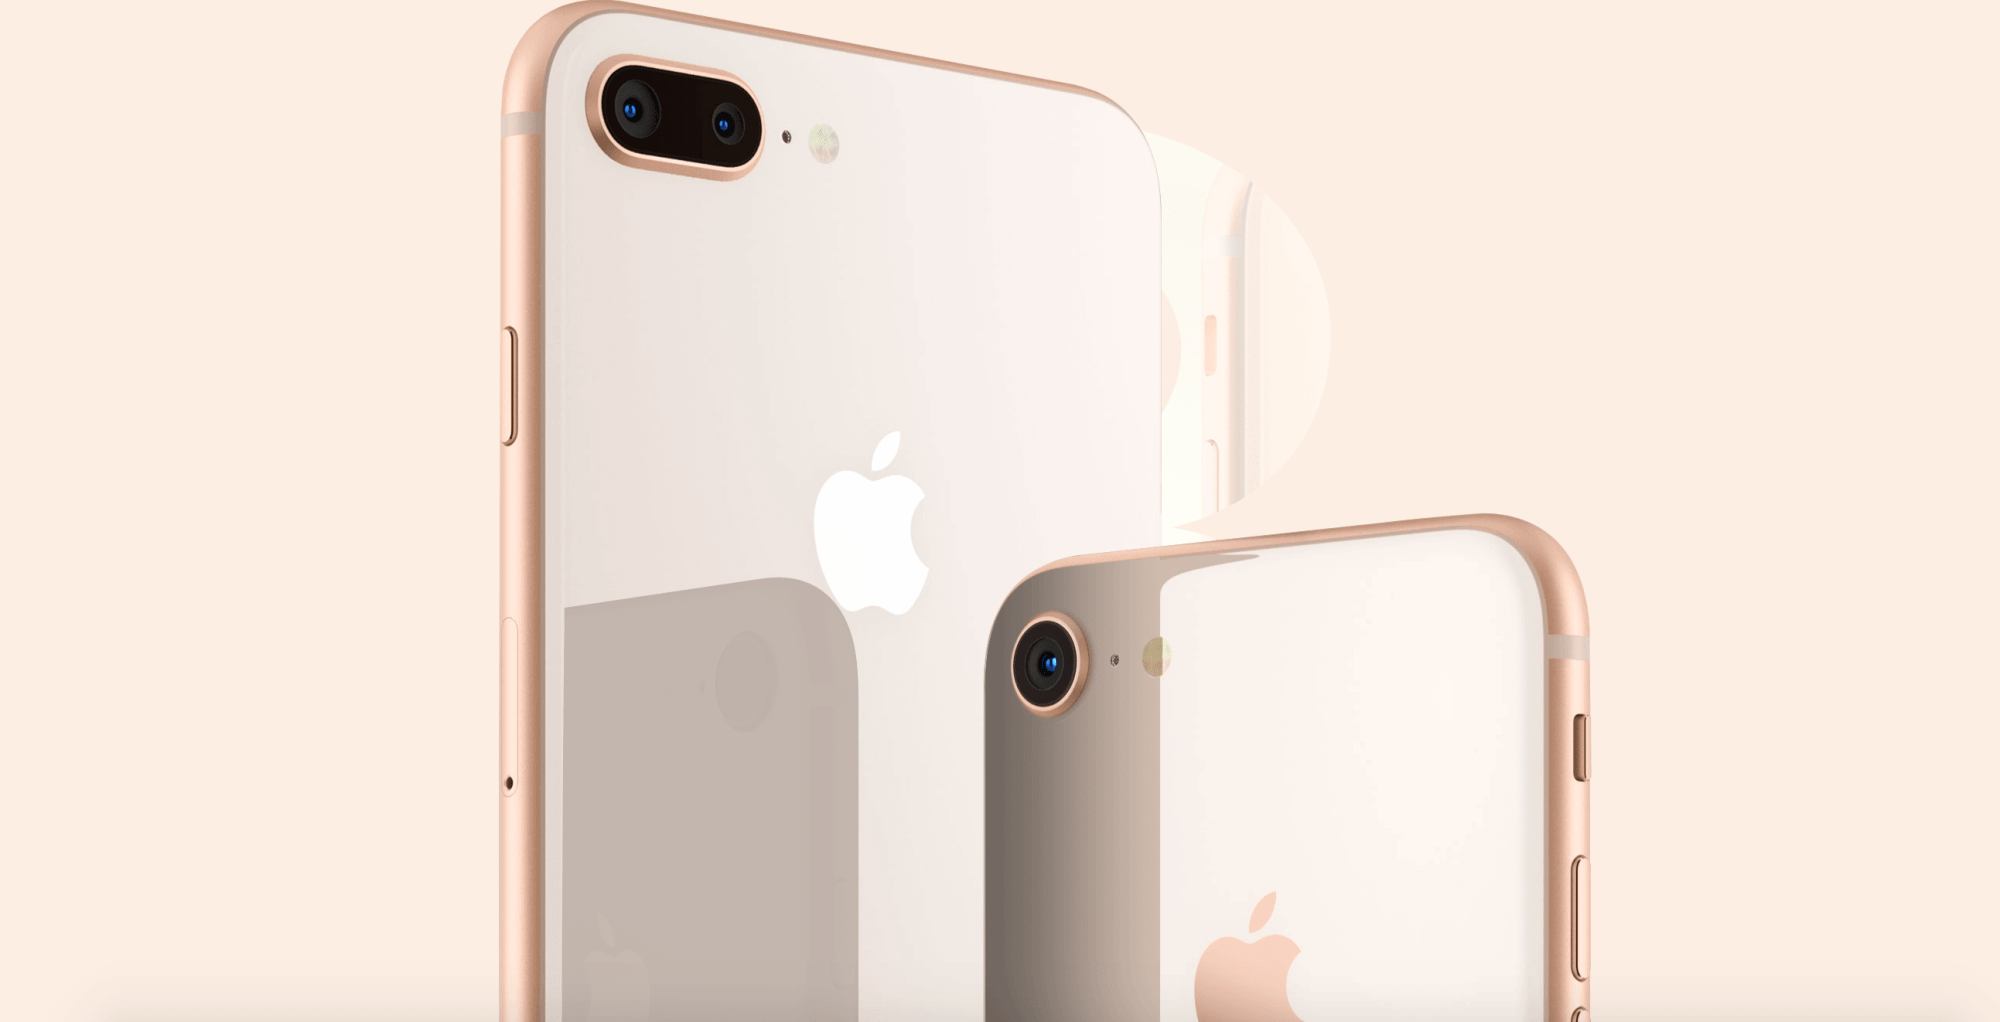 iphone 2 - Pré-venda do iPhone 8 e 8 Plus é iniciada pela Vivo